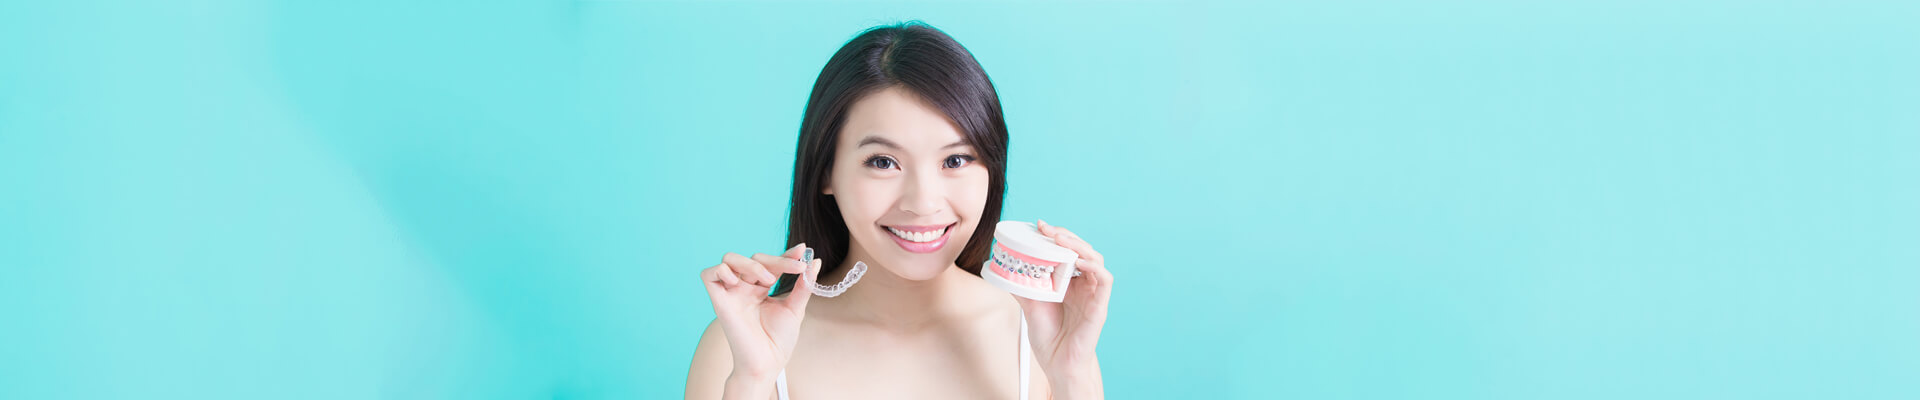 Happy female patient smiling showing invisalign braces